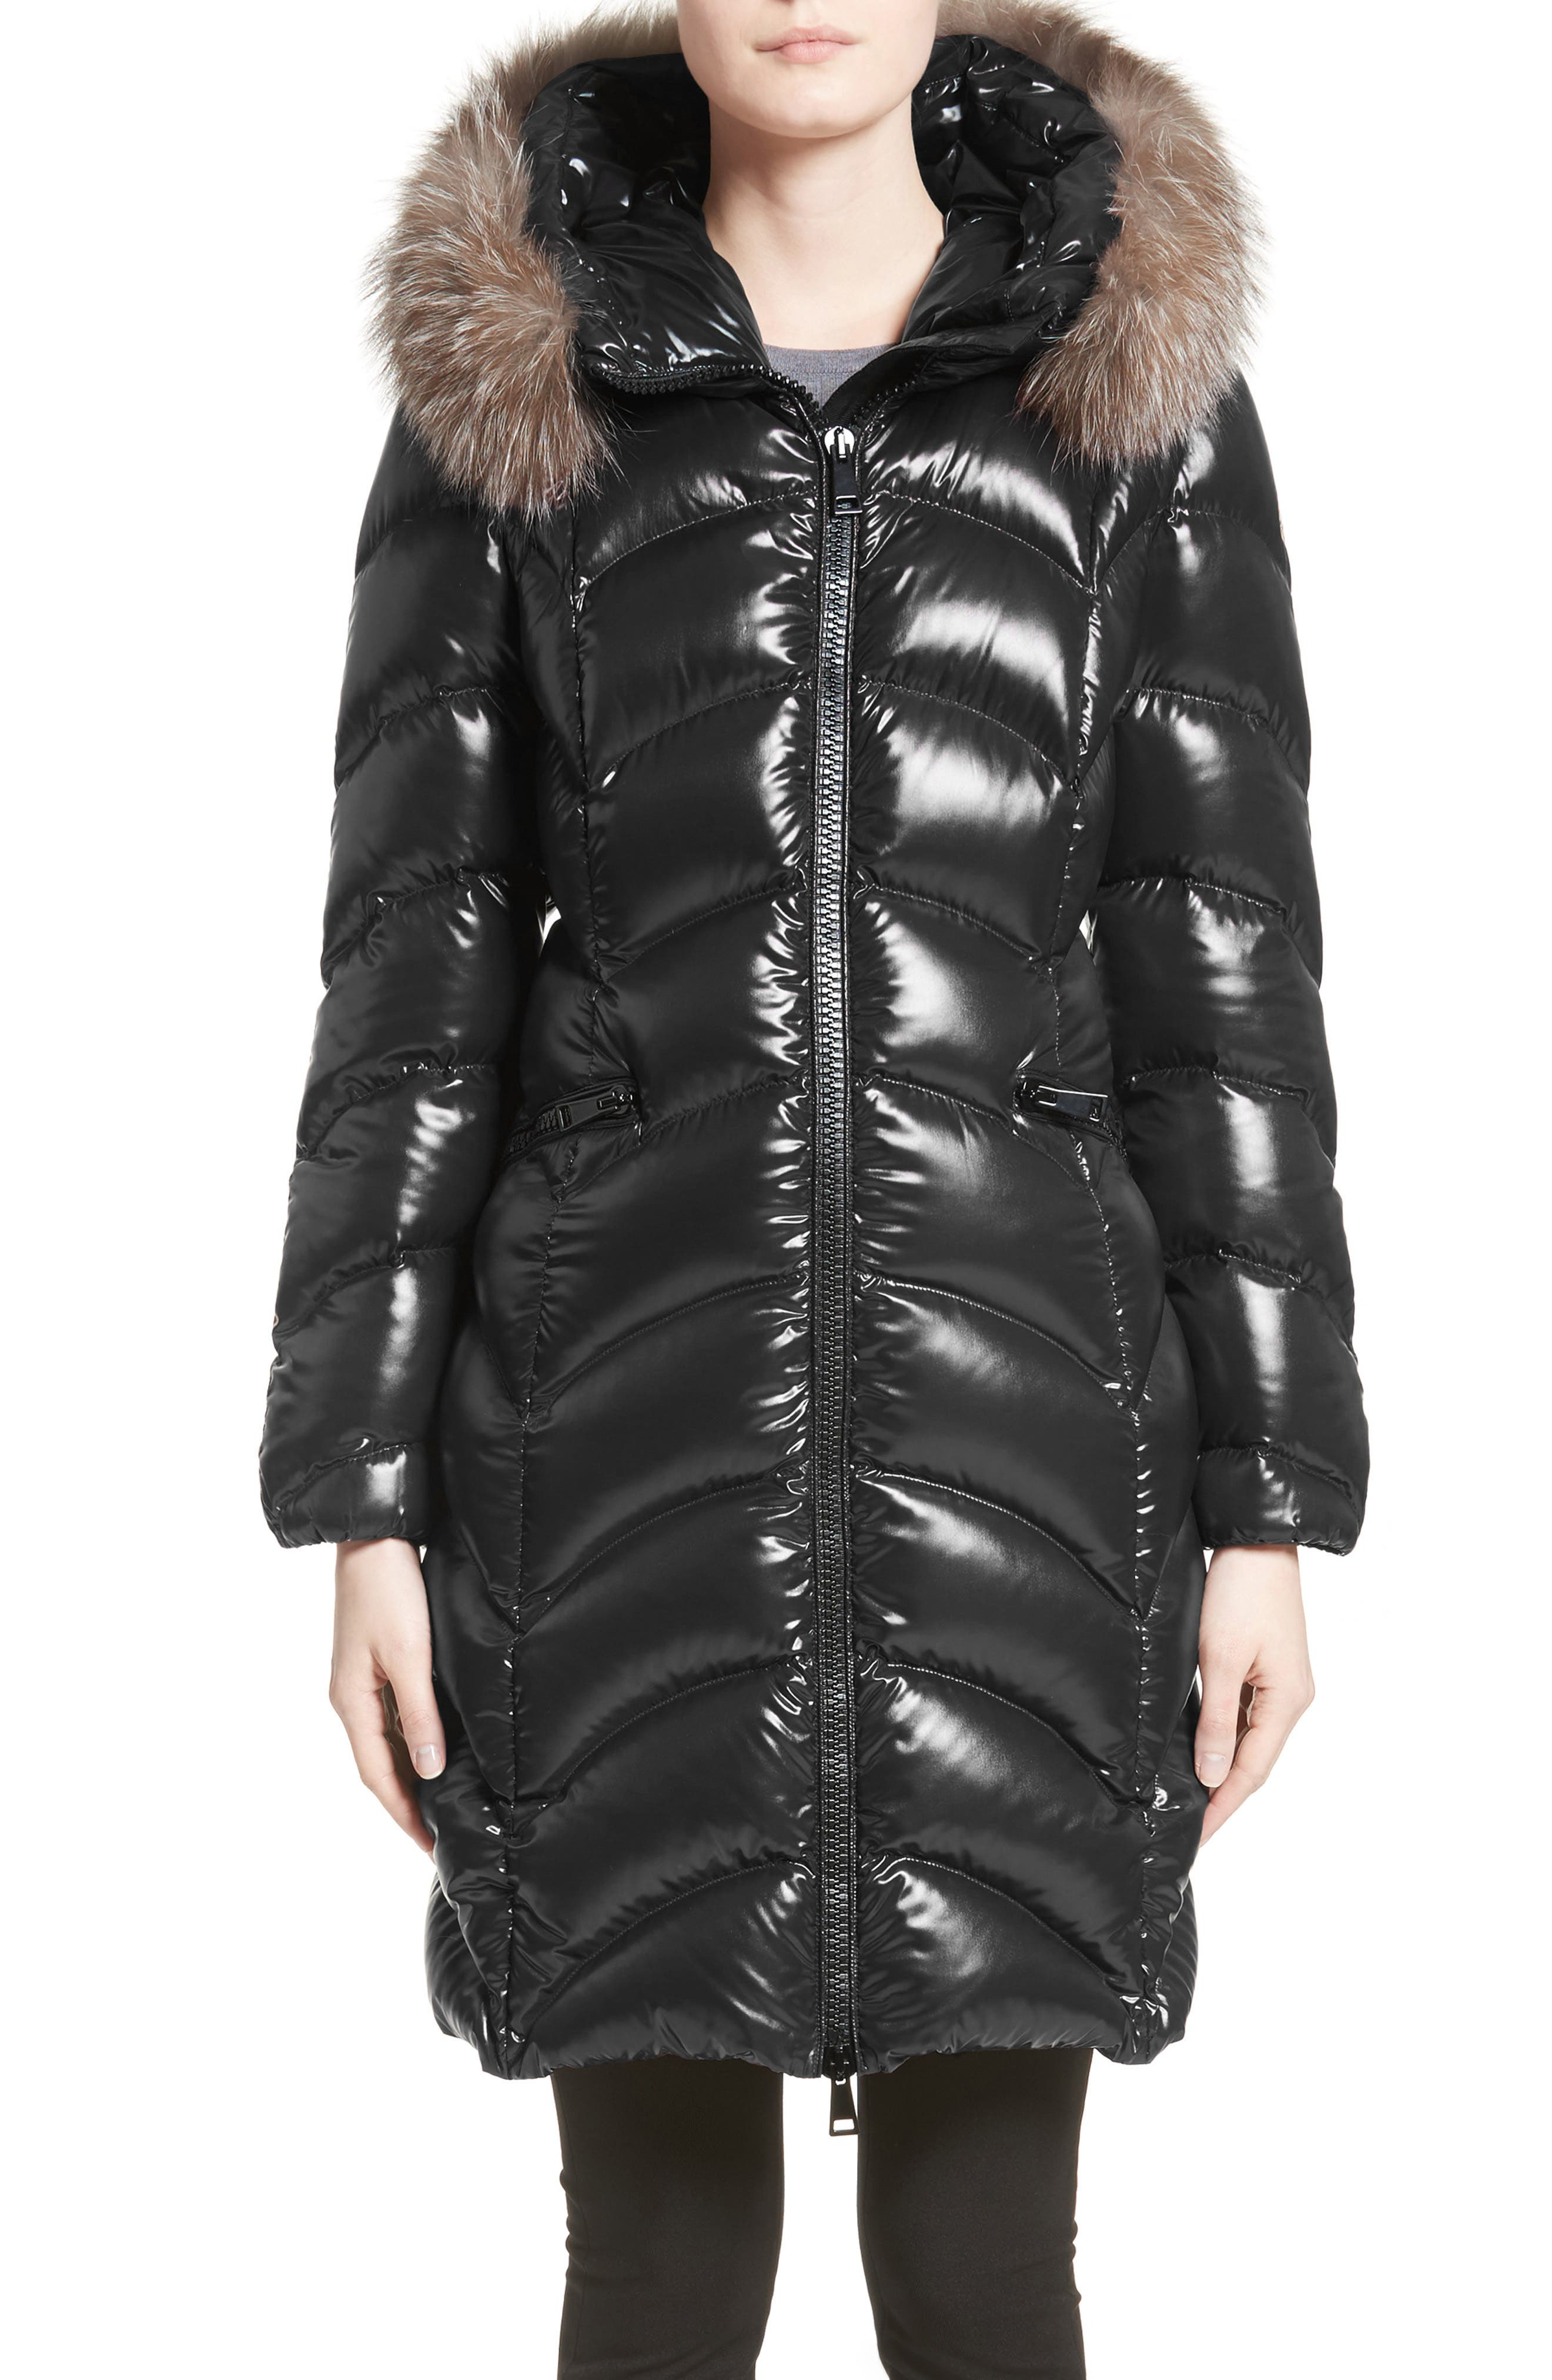 Fur (Genuine) Coats & Jackets for Women | Nordstrom | Nordstrom